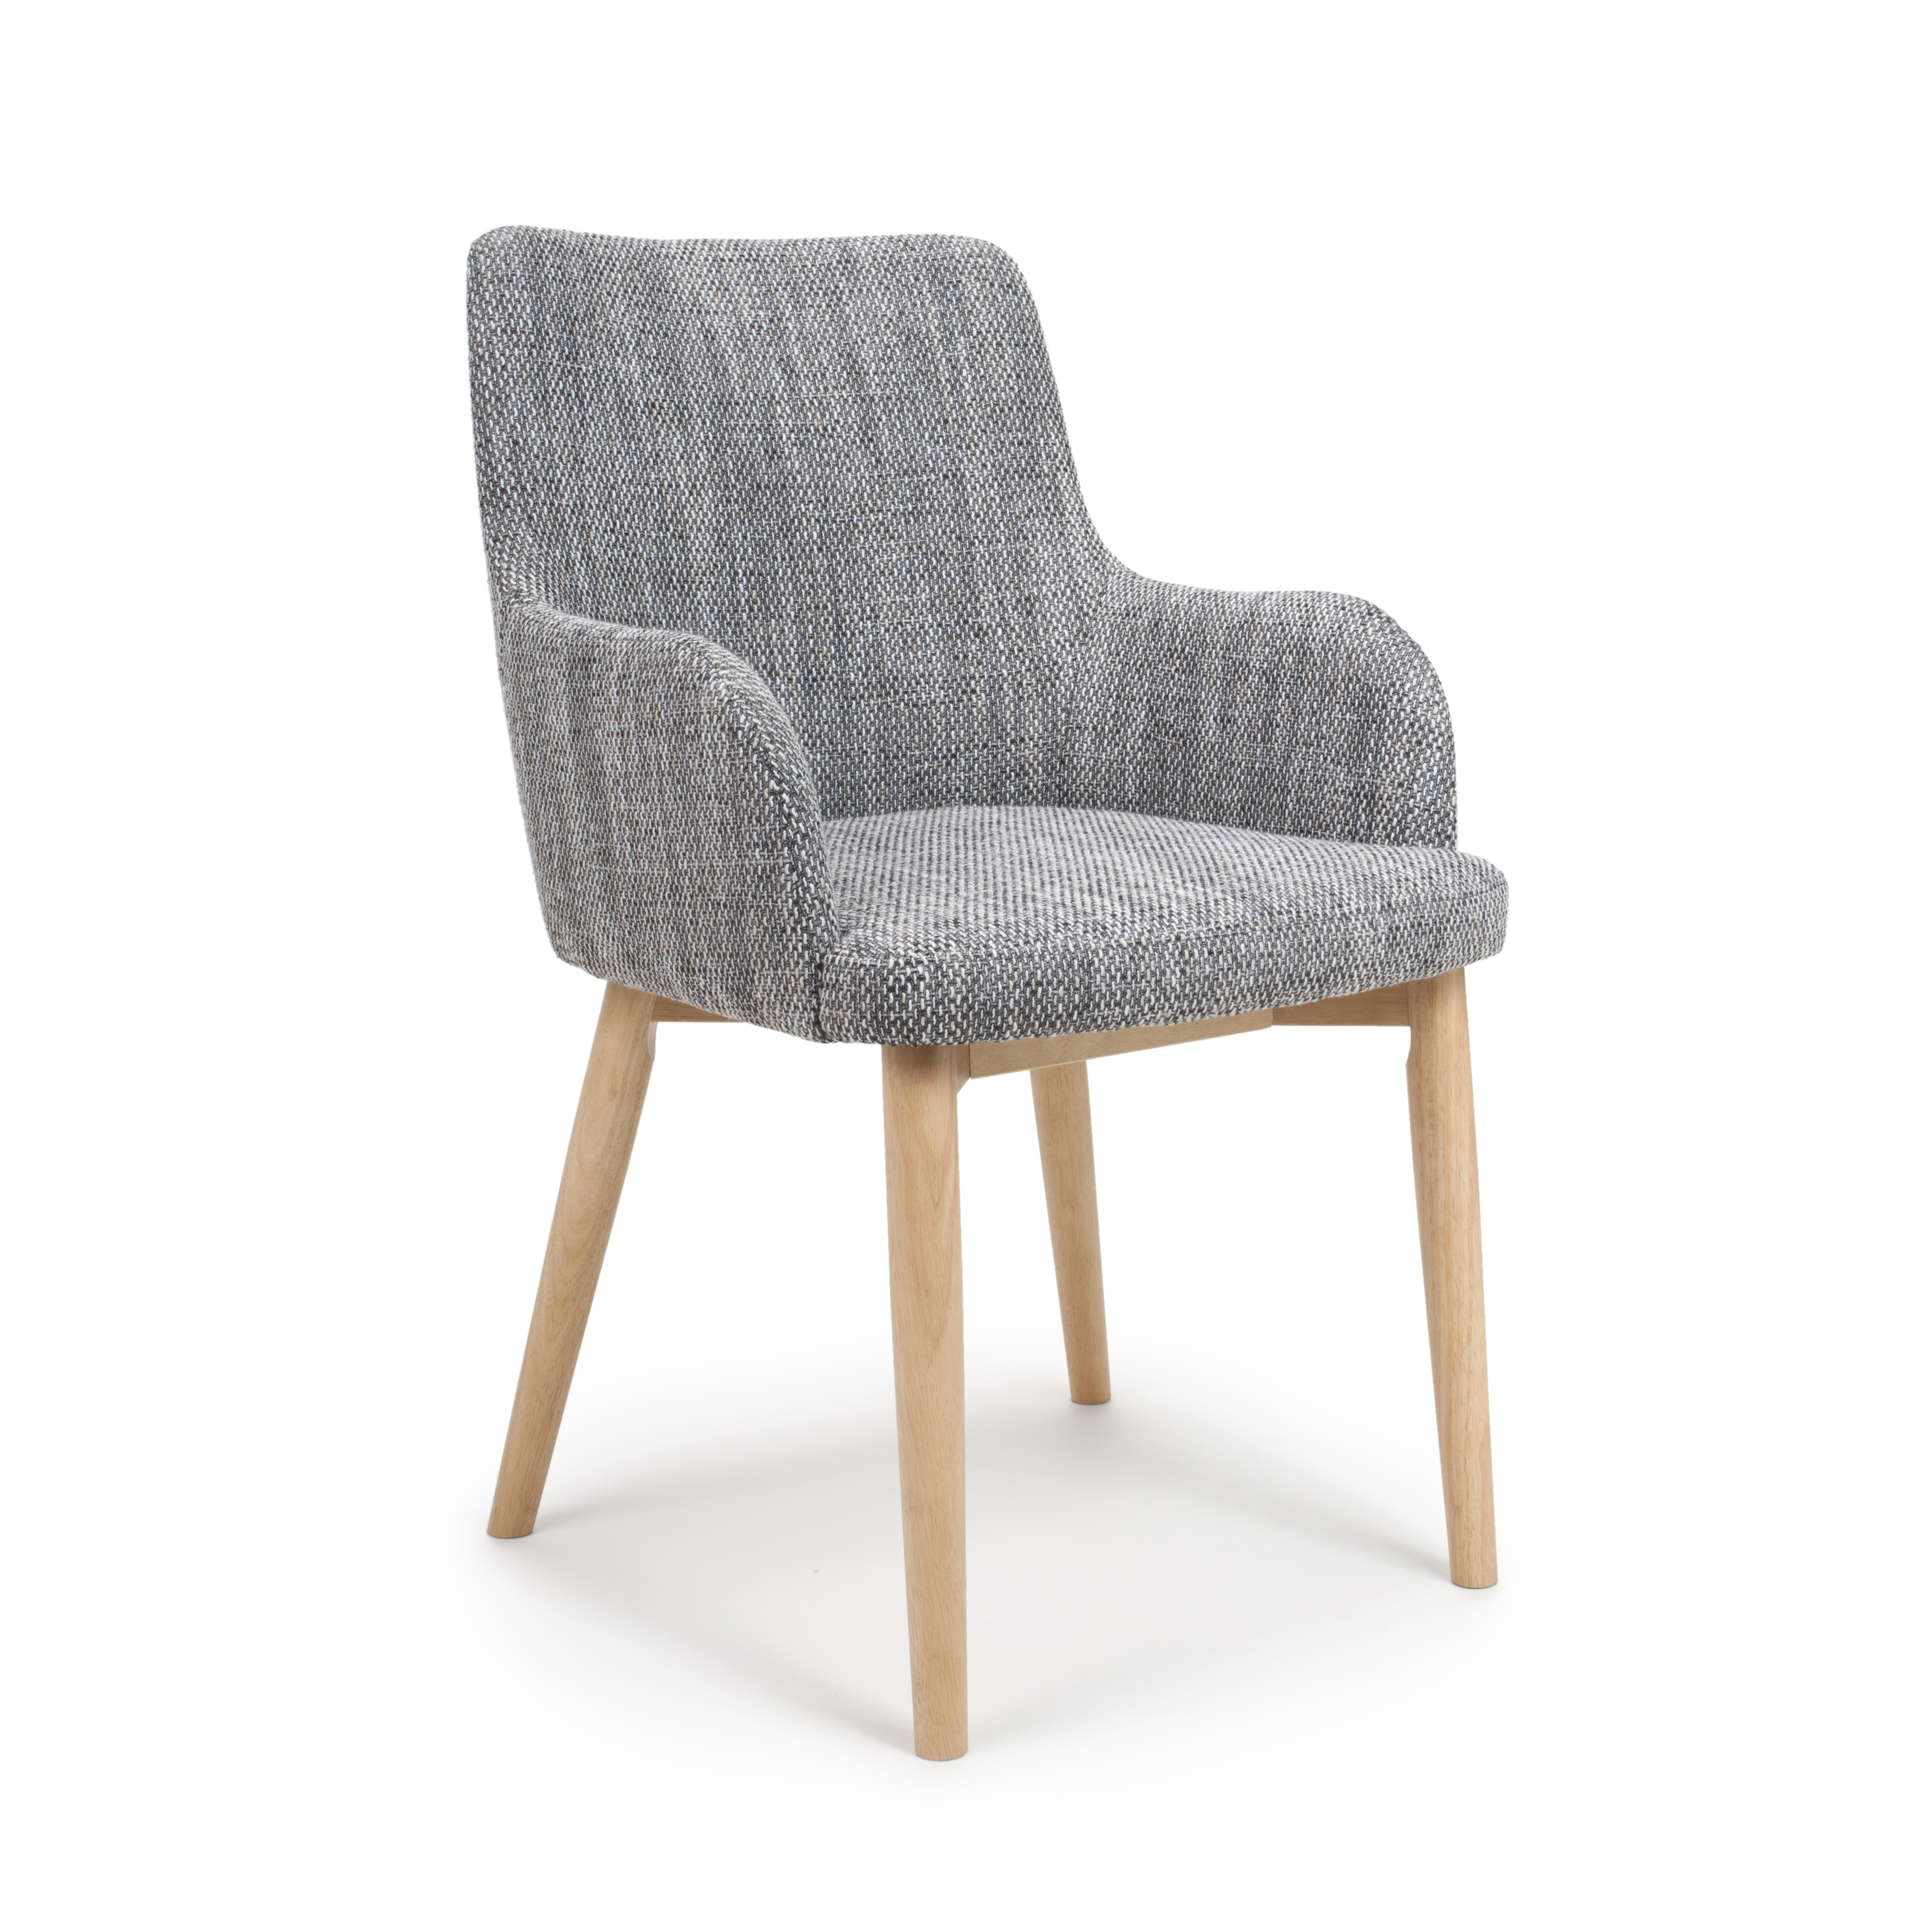 Dining Chairs Sidcup Grey Tweed Fabric Modern Dining Chairs Grey